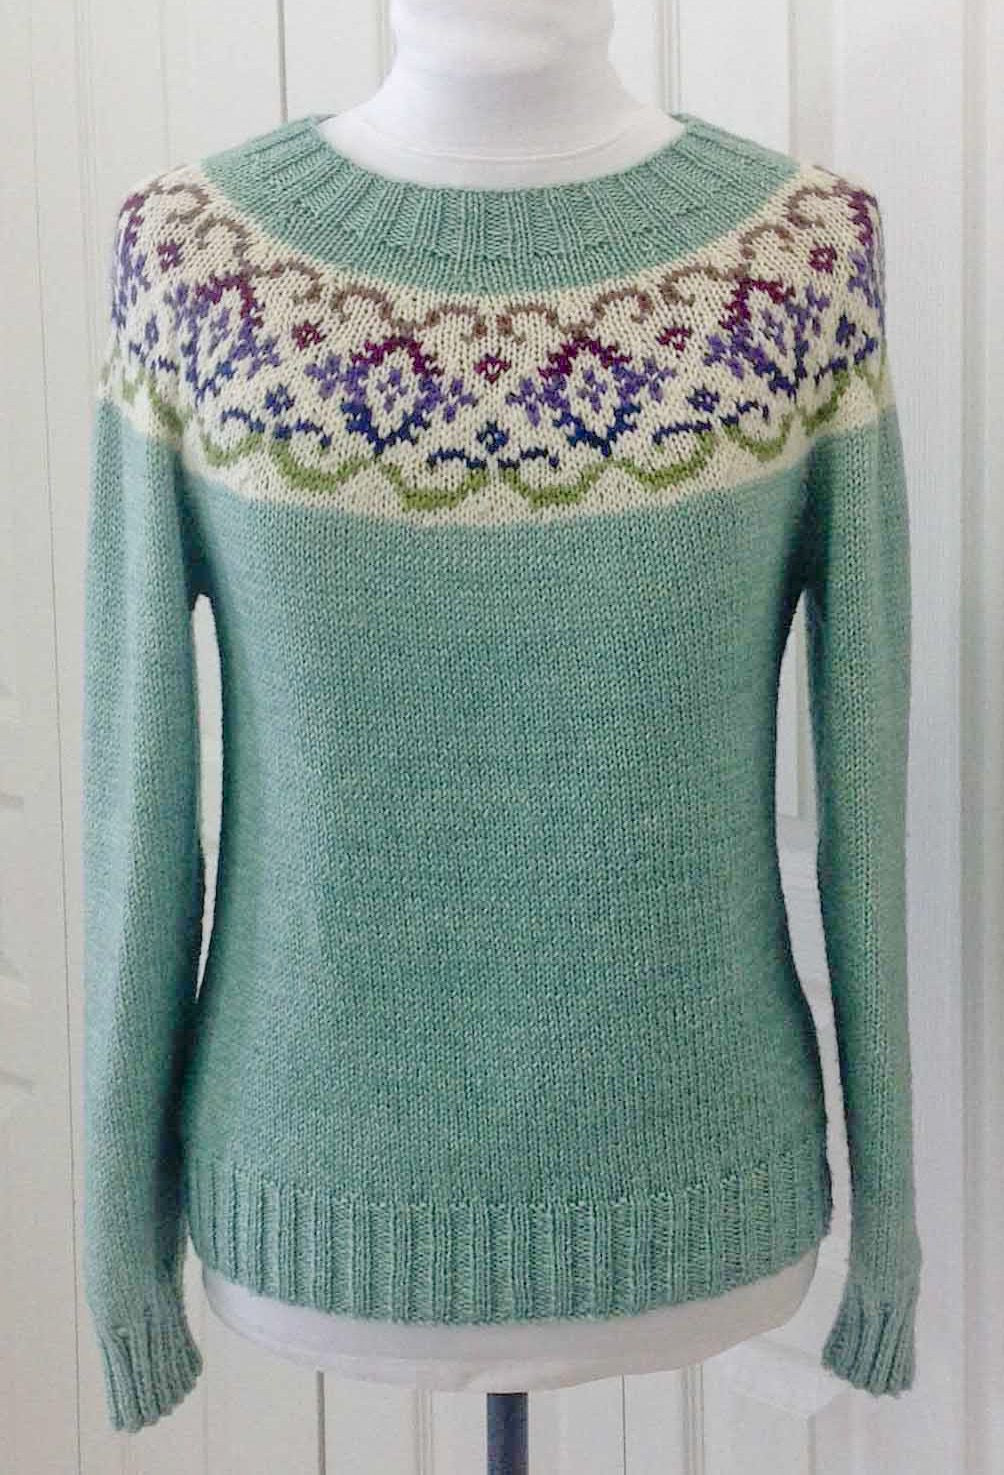 Best Of Fair isle Knitting Projects Experienced Knitters Will Fair isle Knitting Patterns Of Lovely 46 Ideas Fair isle Knitting Patterns